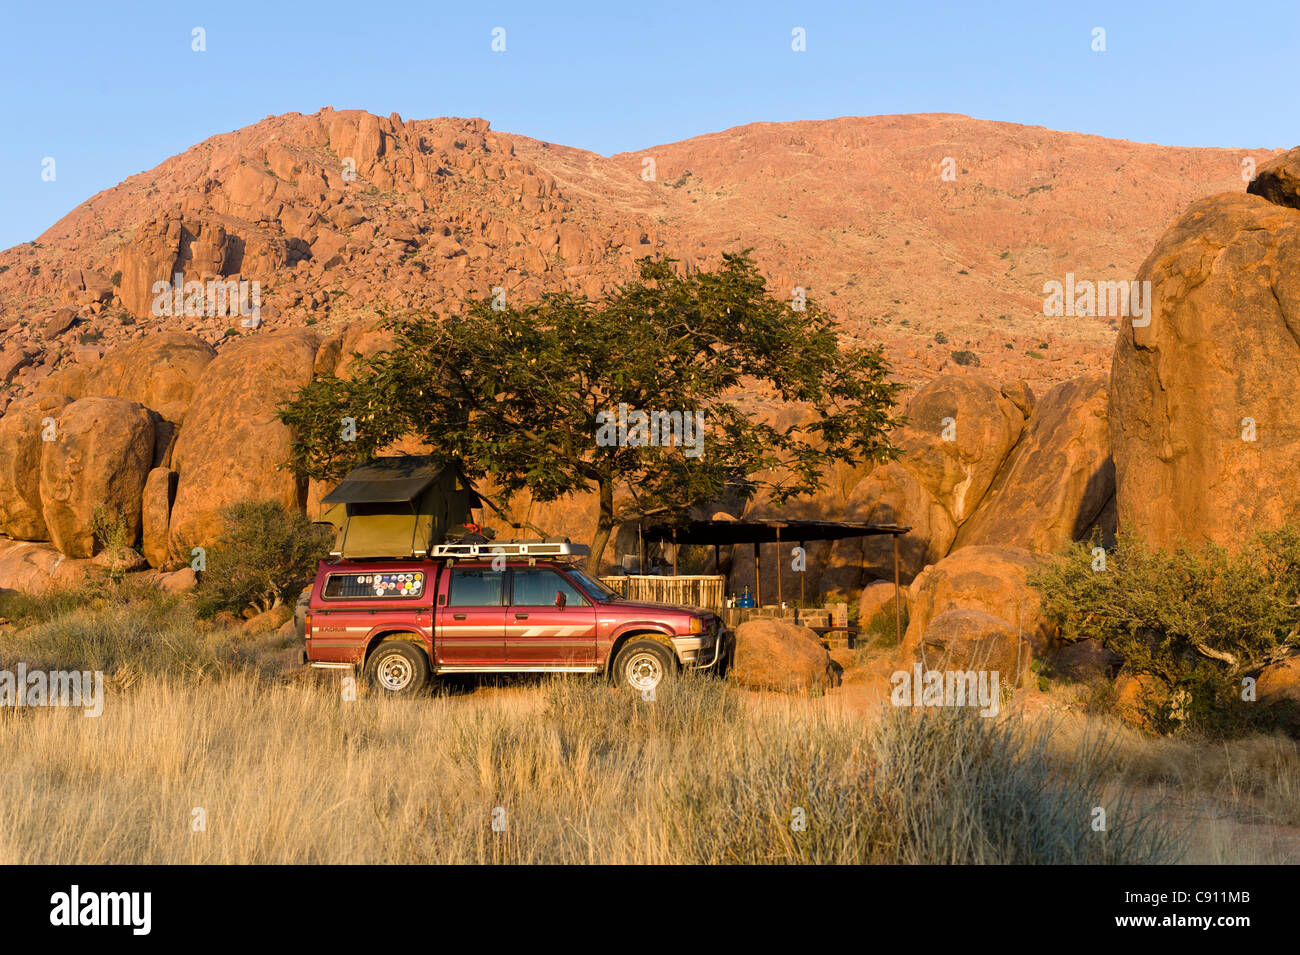 Vehicle with rooftent on Koiimasis farm Tiras Mountains Namibia - Stock Image